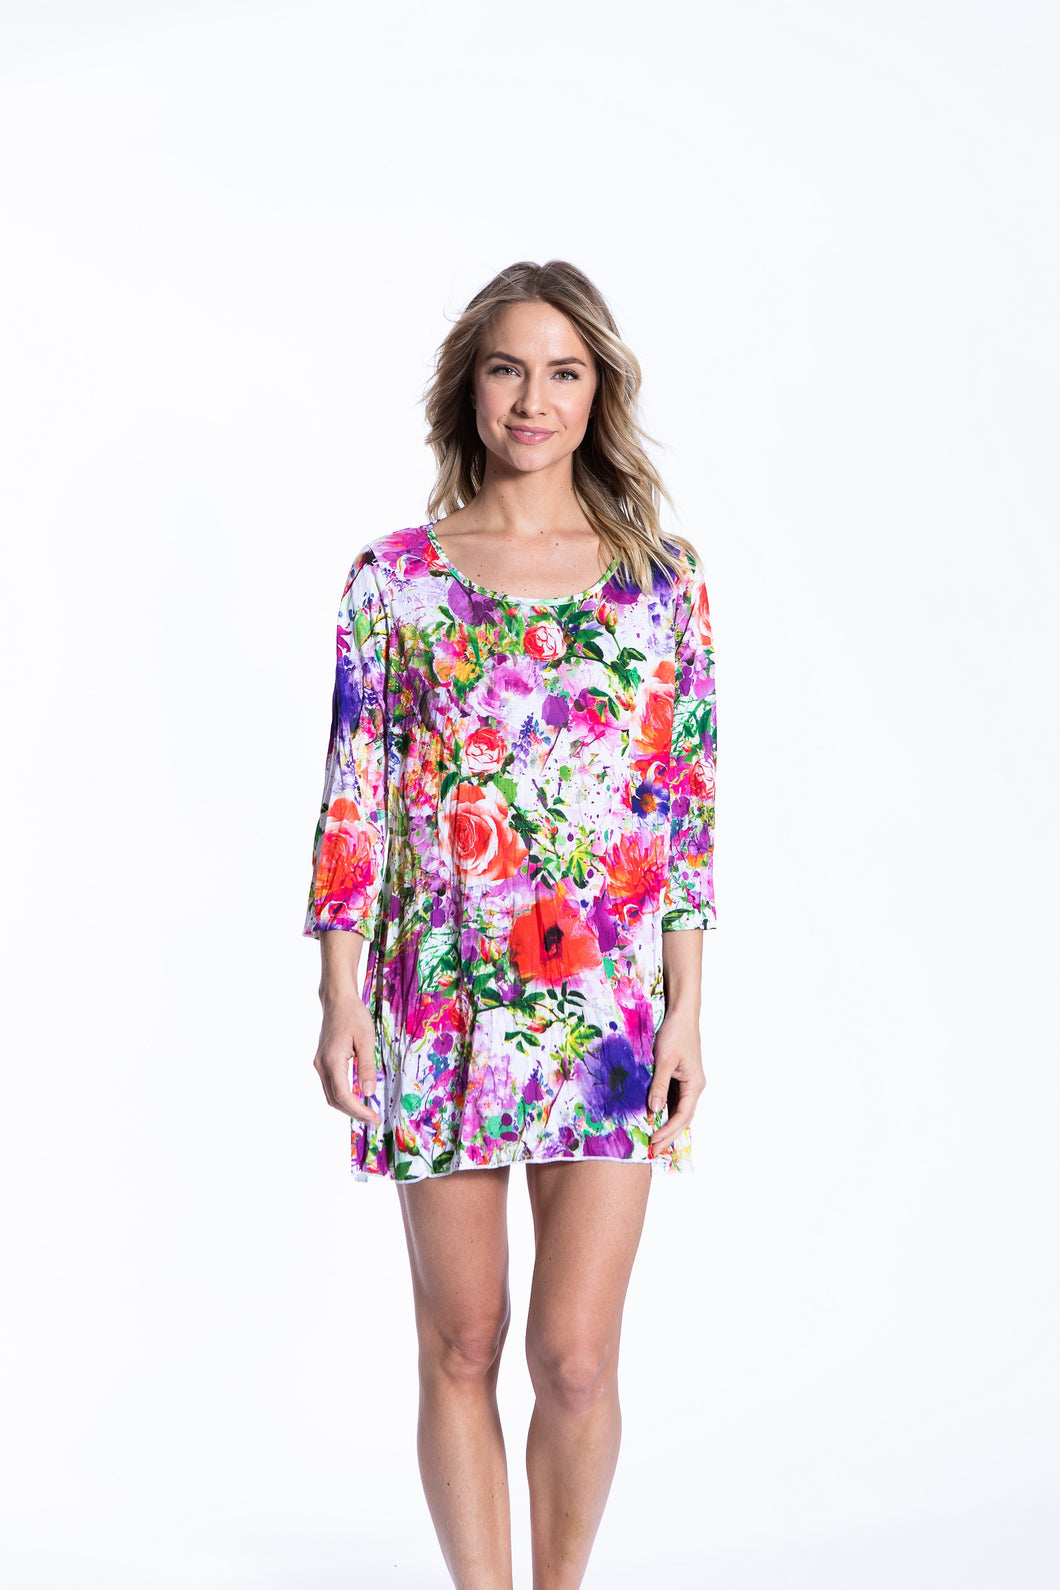 Crinkle Knit Women's Long Tunic Pullover, Transfer Print - Summer Flowers - Ondululations womens silk dresses